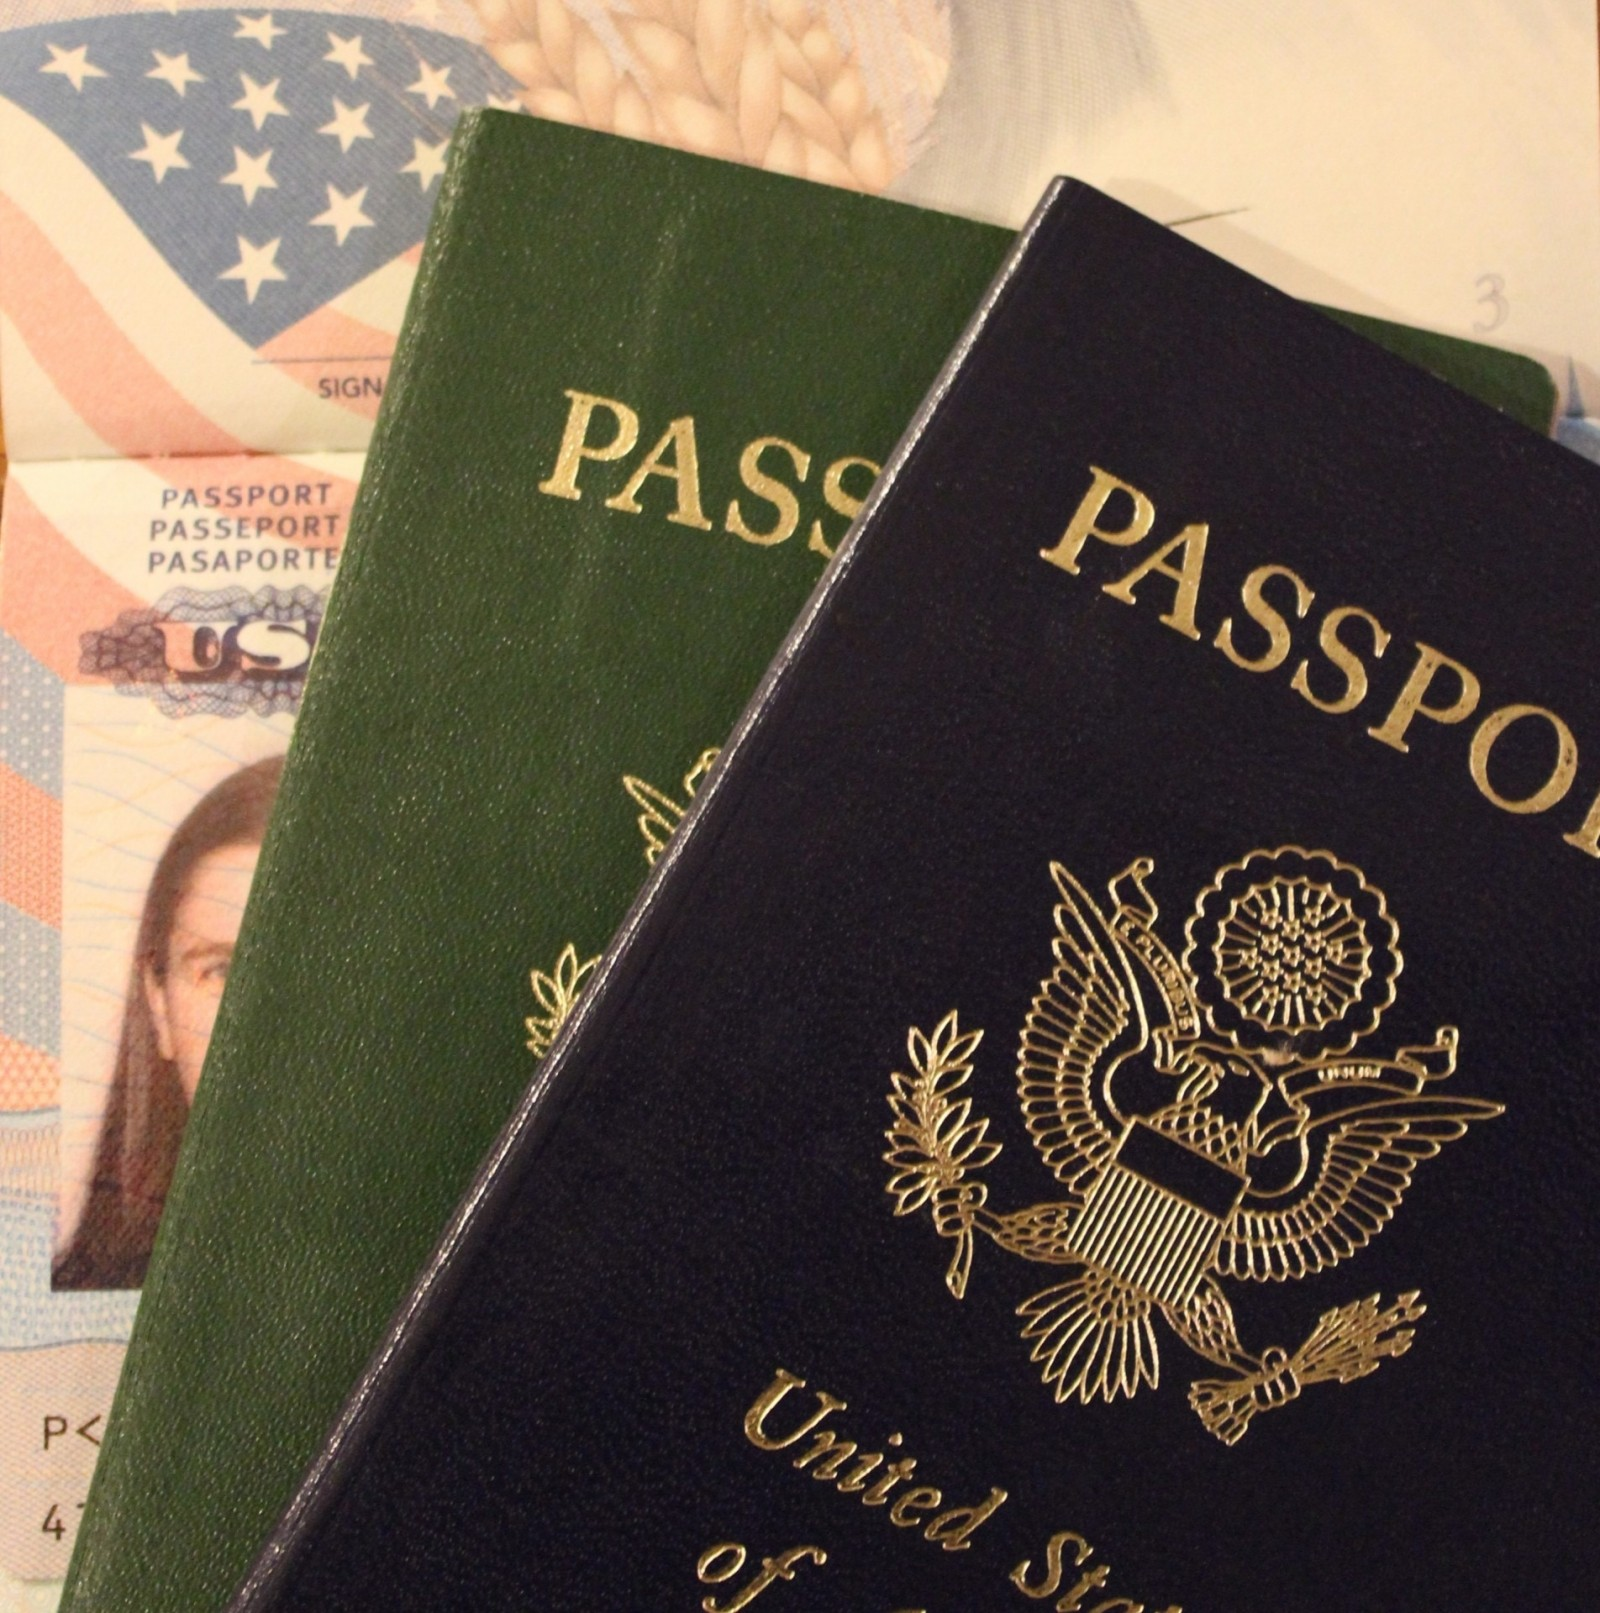 jobs in Australia for foreigners - photos of passports